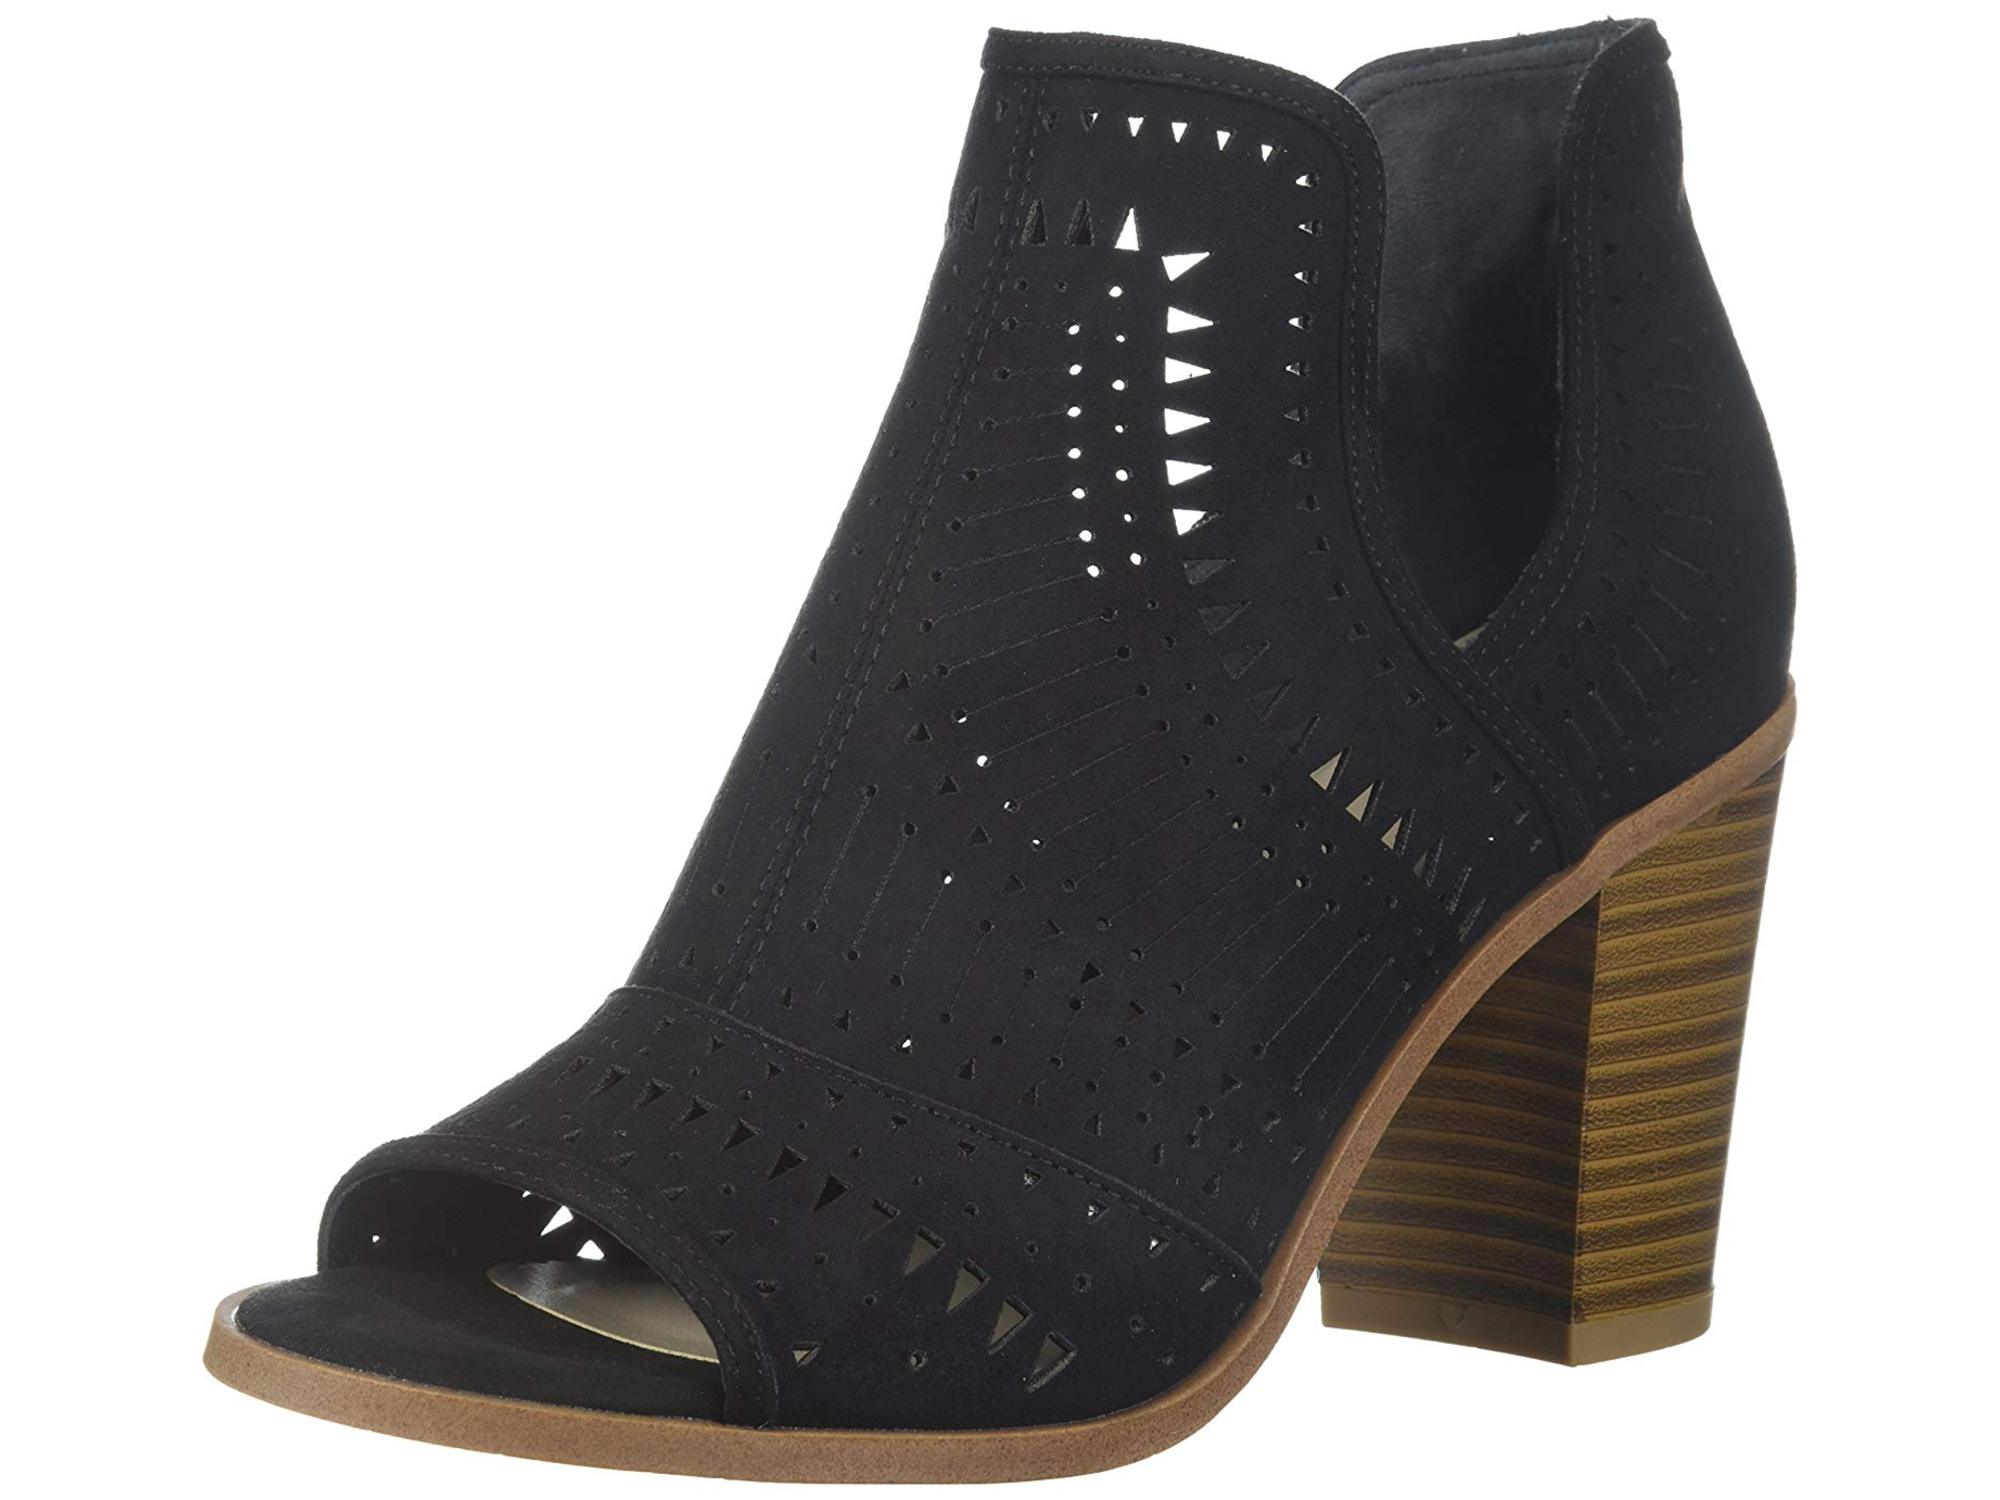 Fergalicious Women's Rattle Ankle Boot Economical, stylish, and eye-catching shoes